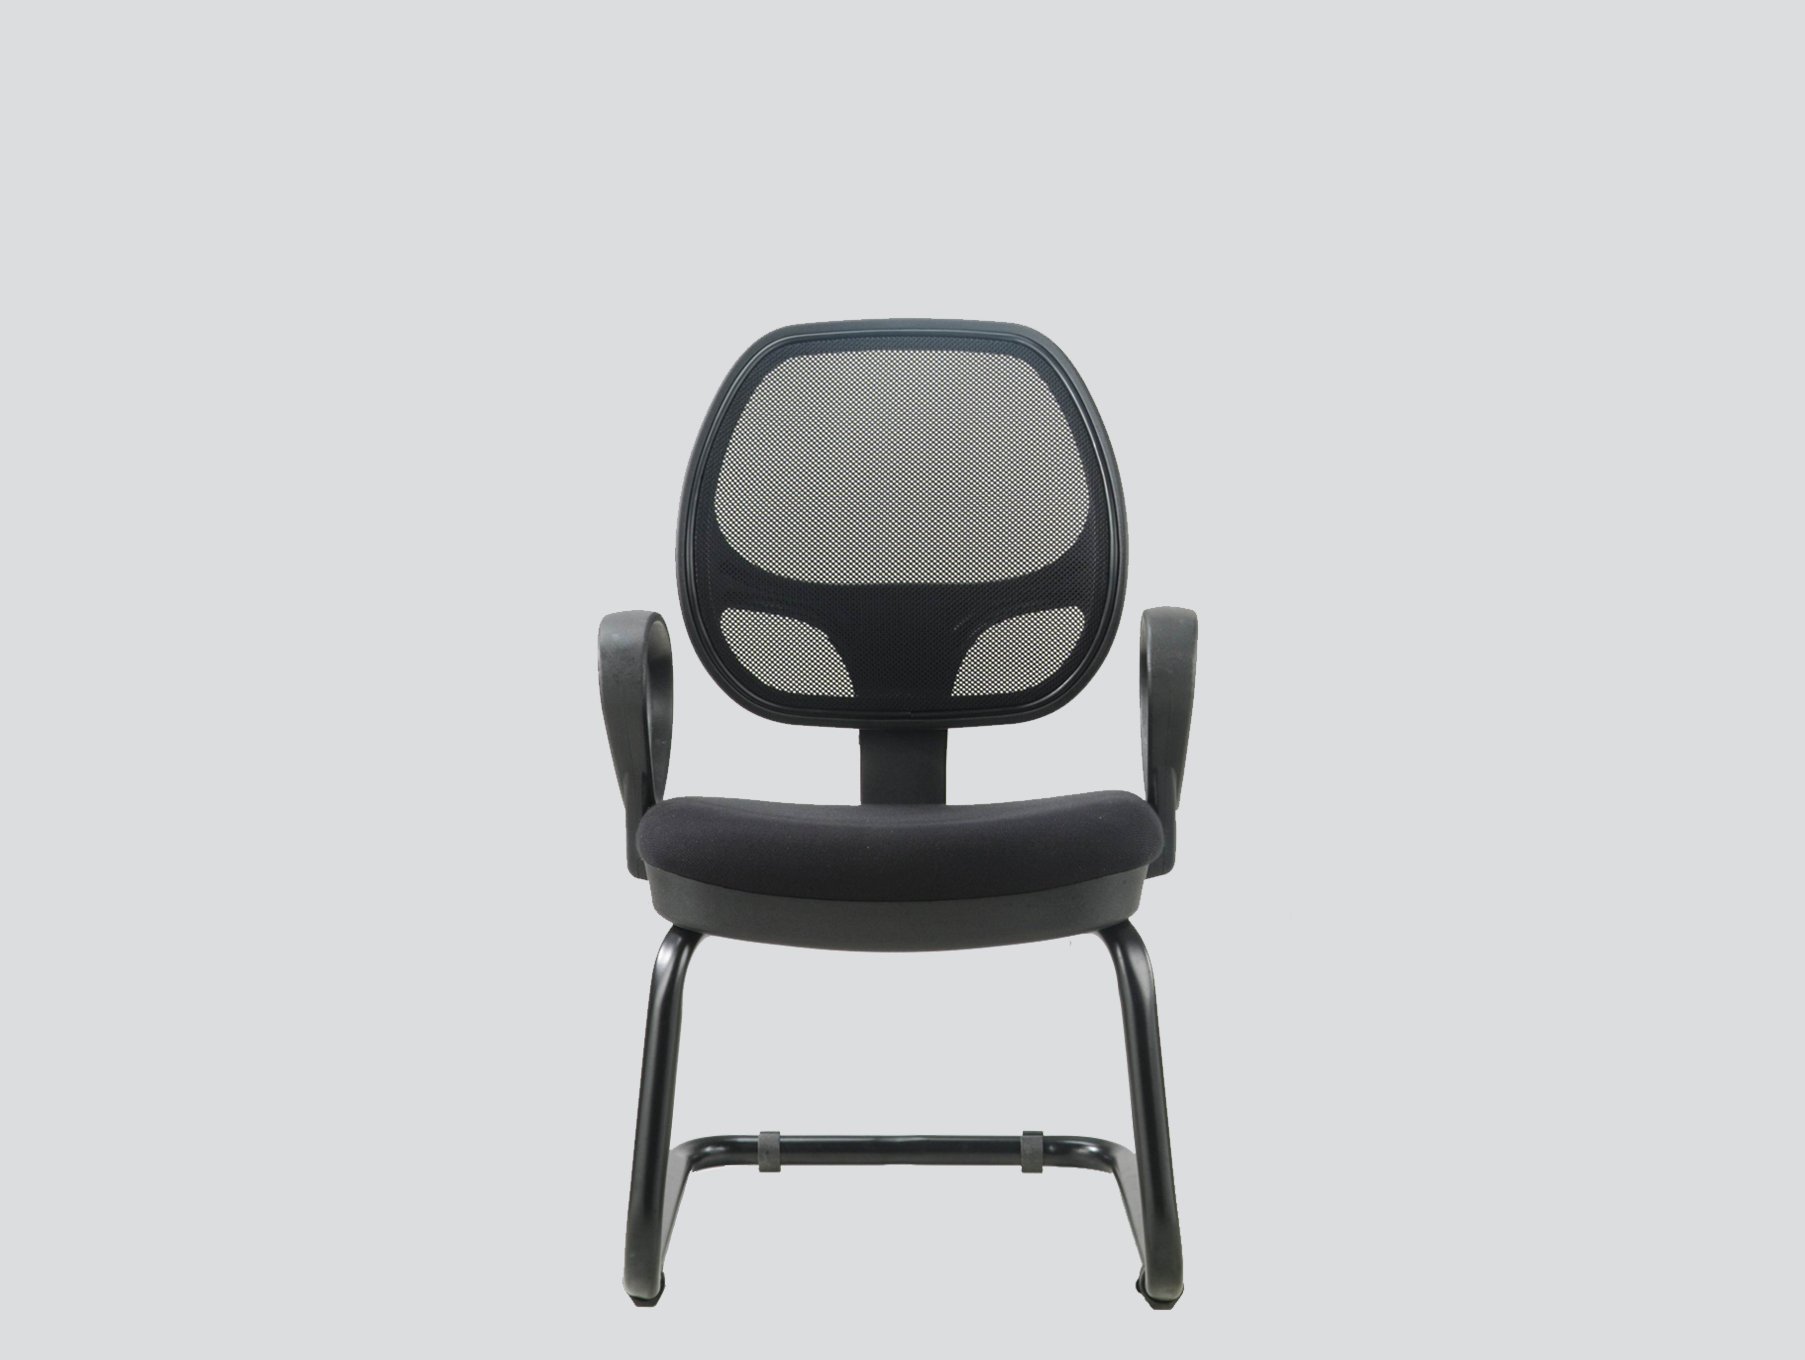 Office Chairs Near Me Buy Chair Lebanon Furniture Stores In Lebanon With Prices Office Chair Near Me